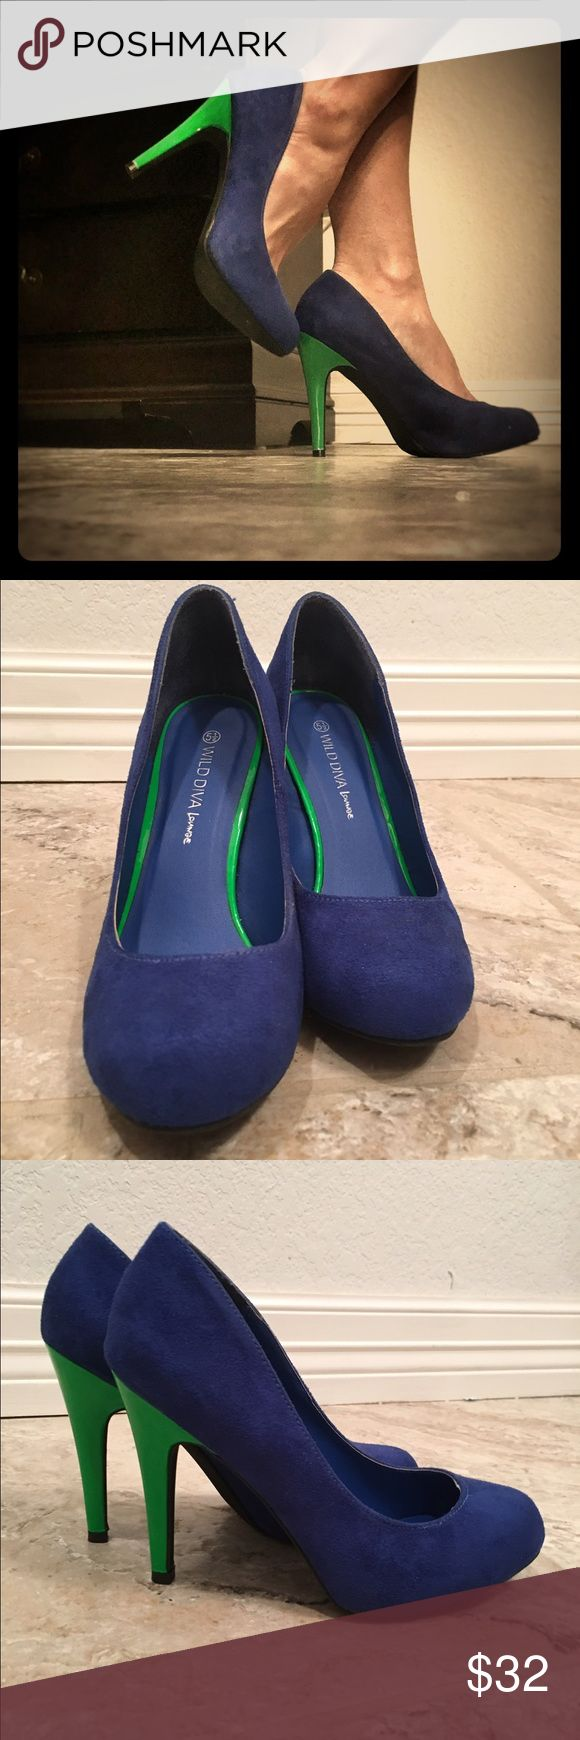 Blue Suede Pumps w/ Kelly green pump | heel Blue Suede Pumps w/ Kelly green heel. Suuuuchhh a cute, great and comply pump/heel. Worn only a few times, no signs of wear and tear! Love!! Wild Diva Shoes Heels